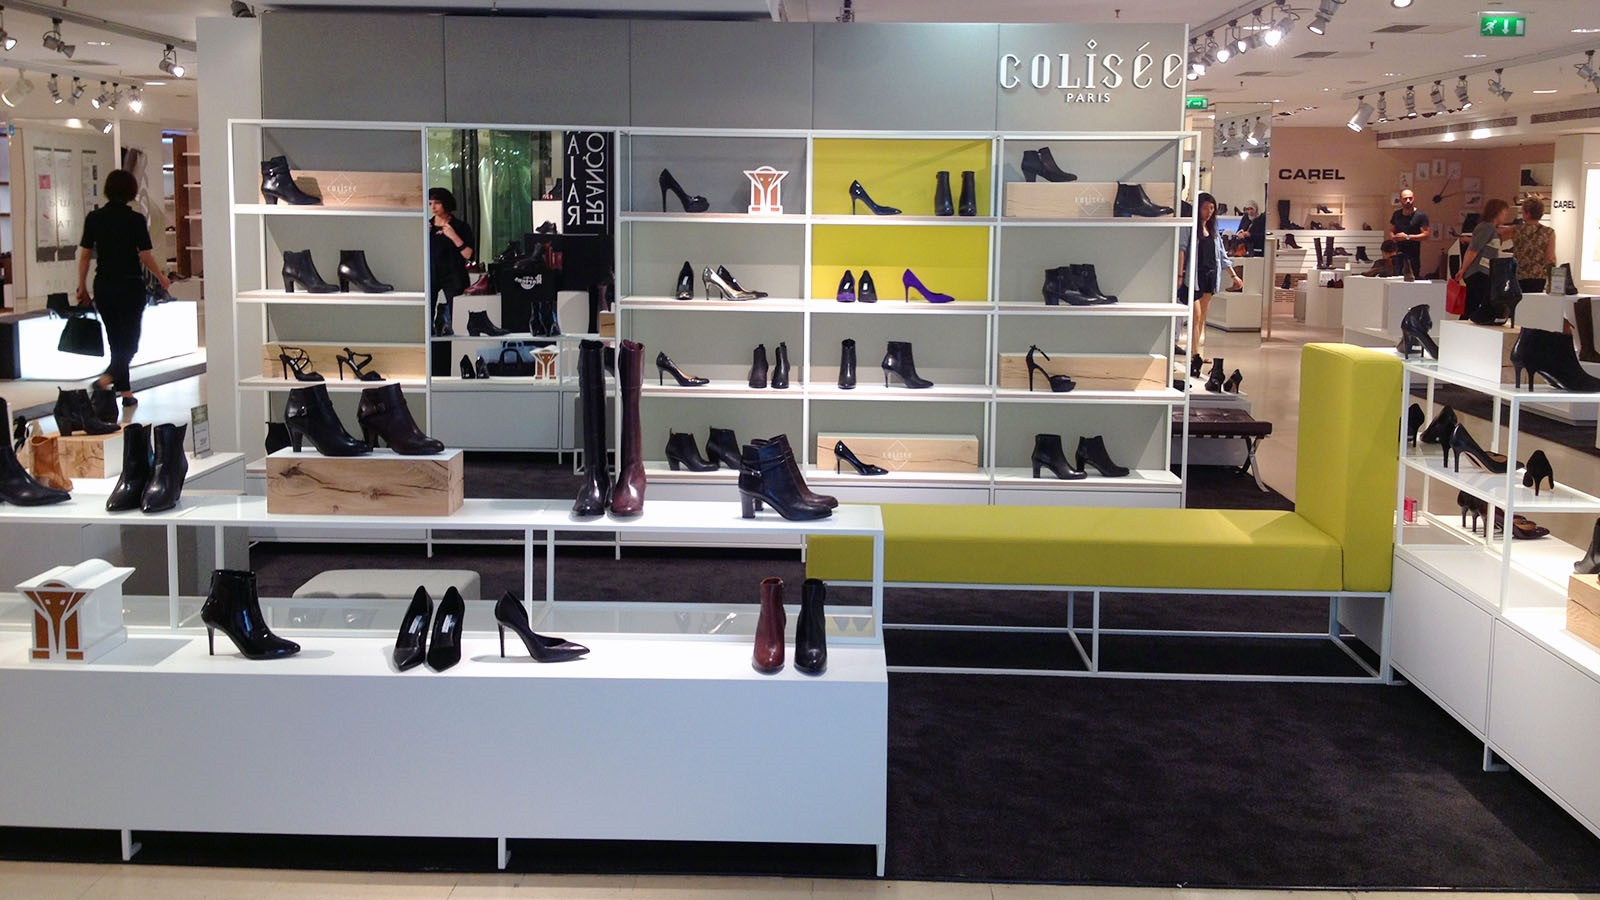 Boutique Colisee Paris Efi Design (3)